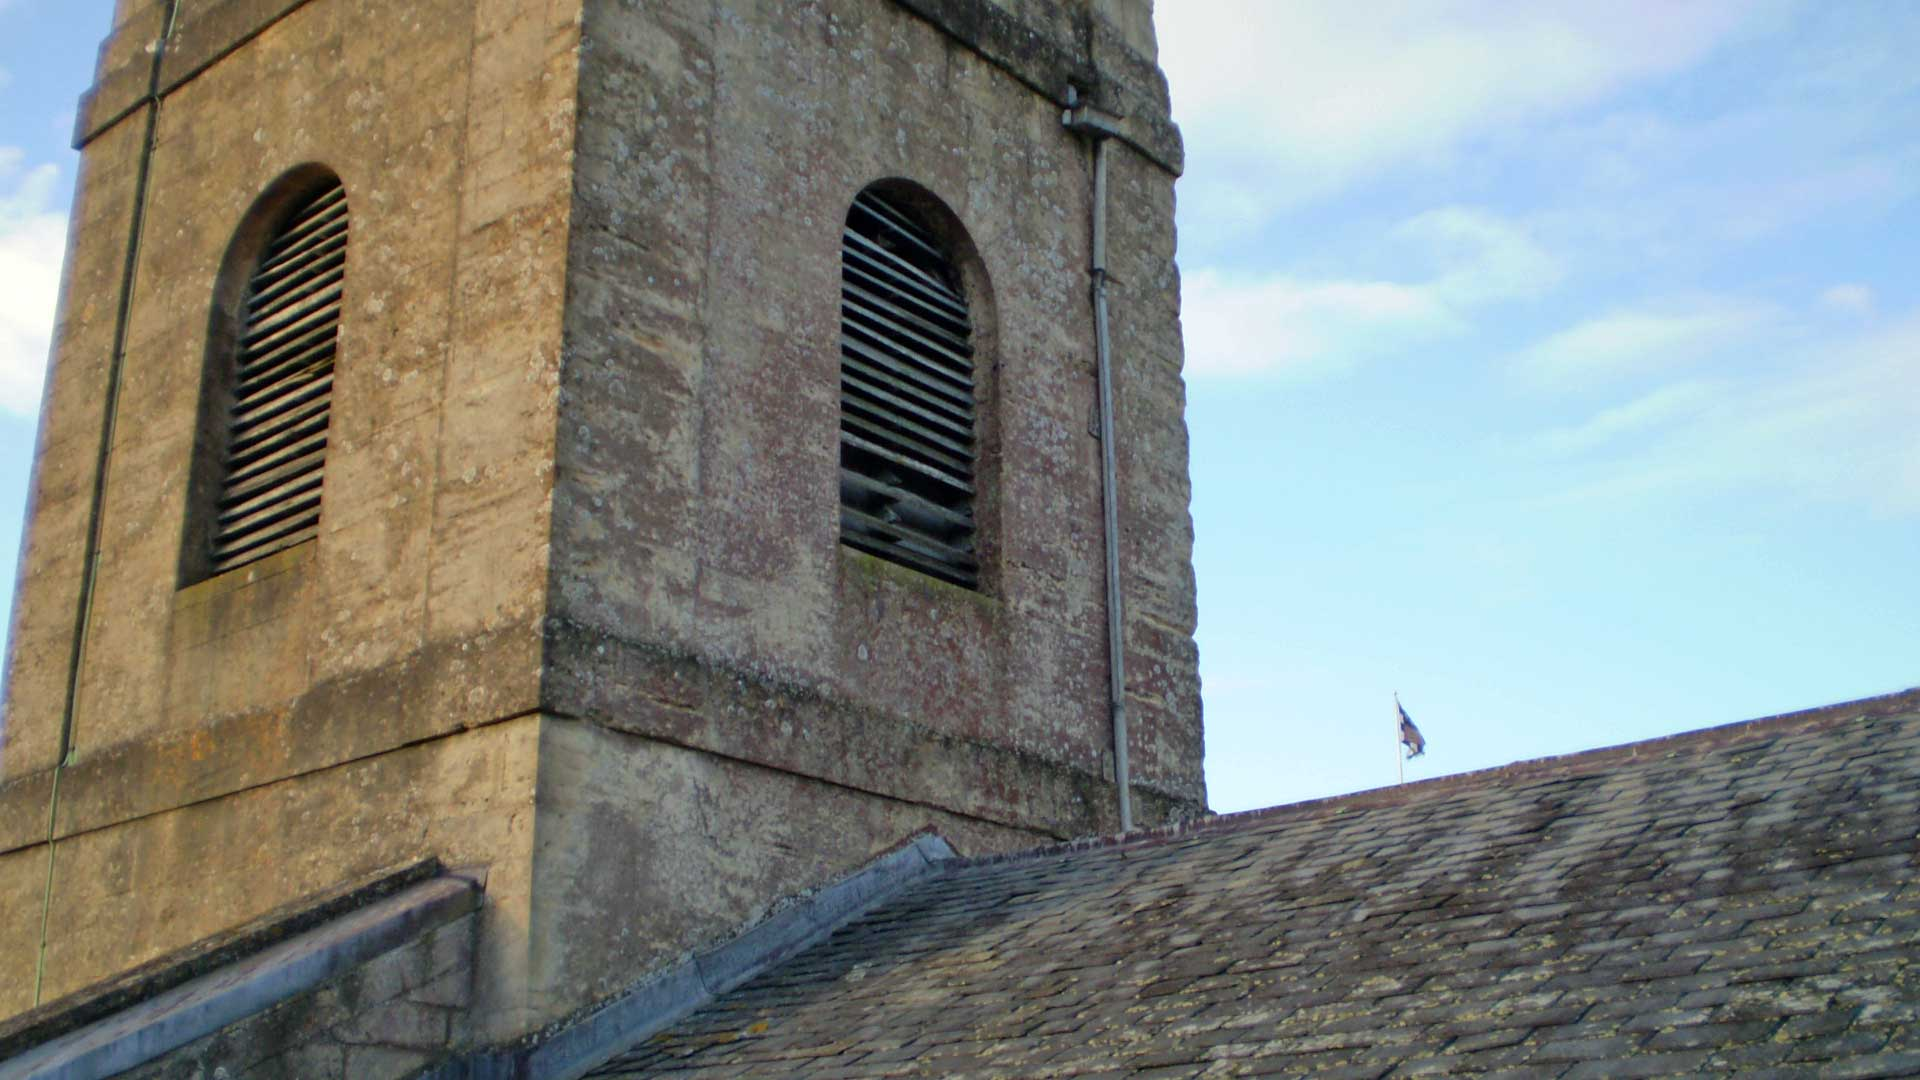 Misssing Sound Louvres in the Tower